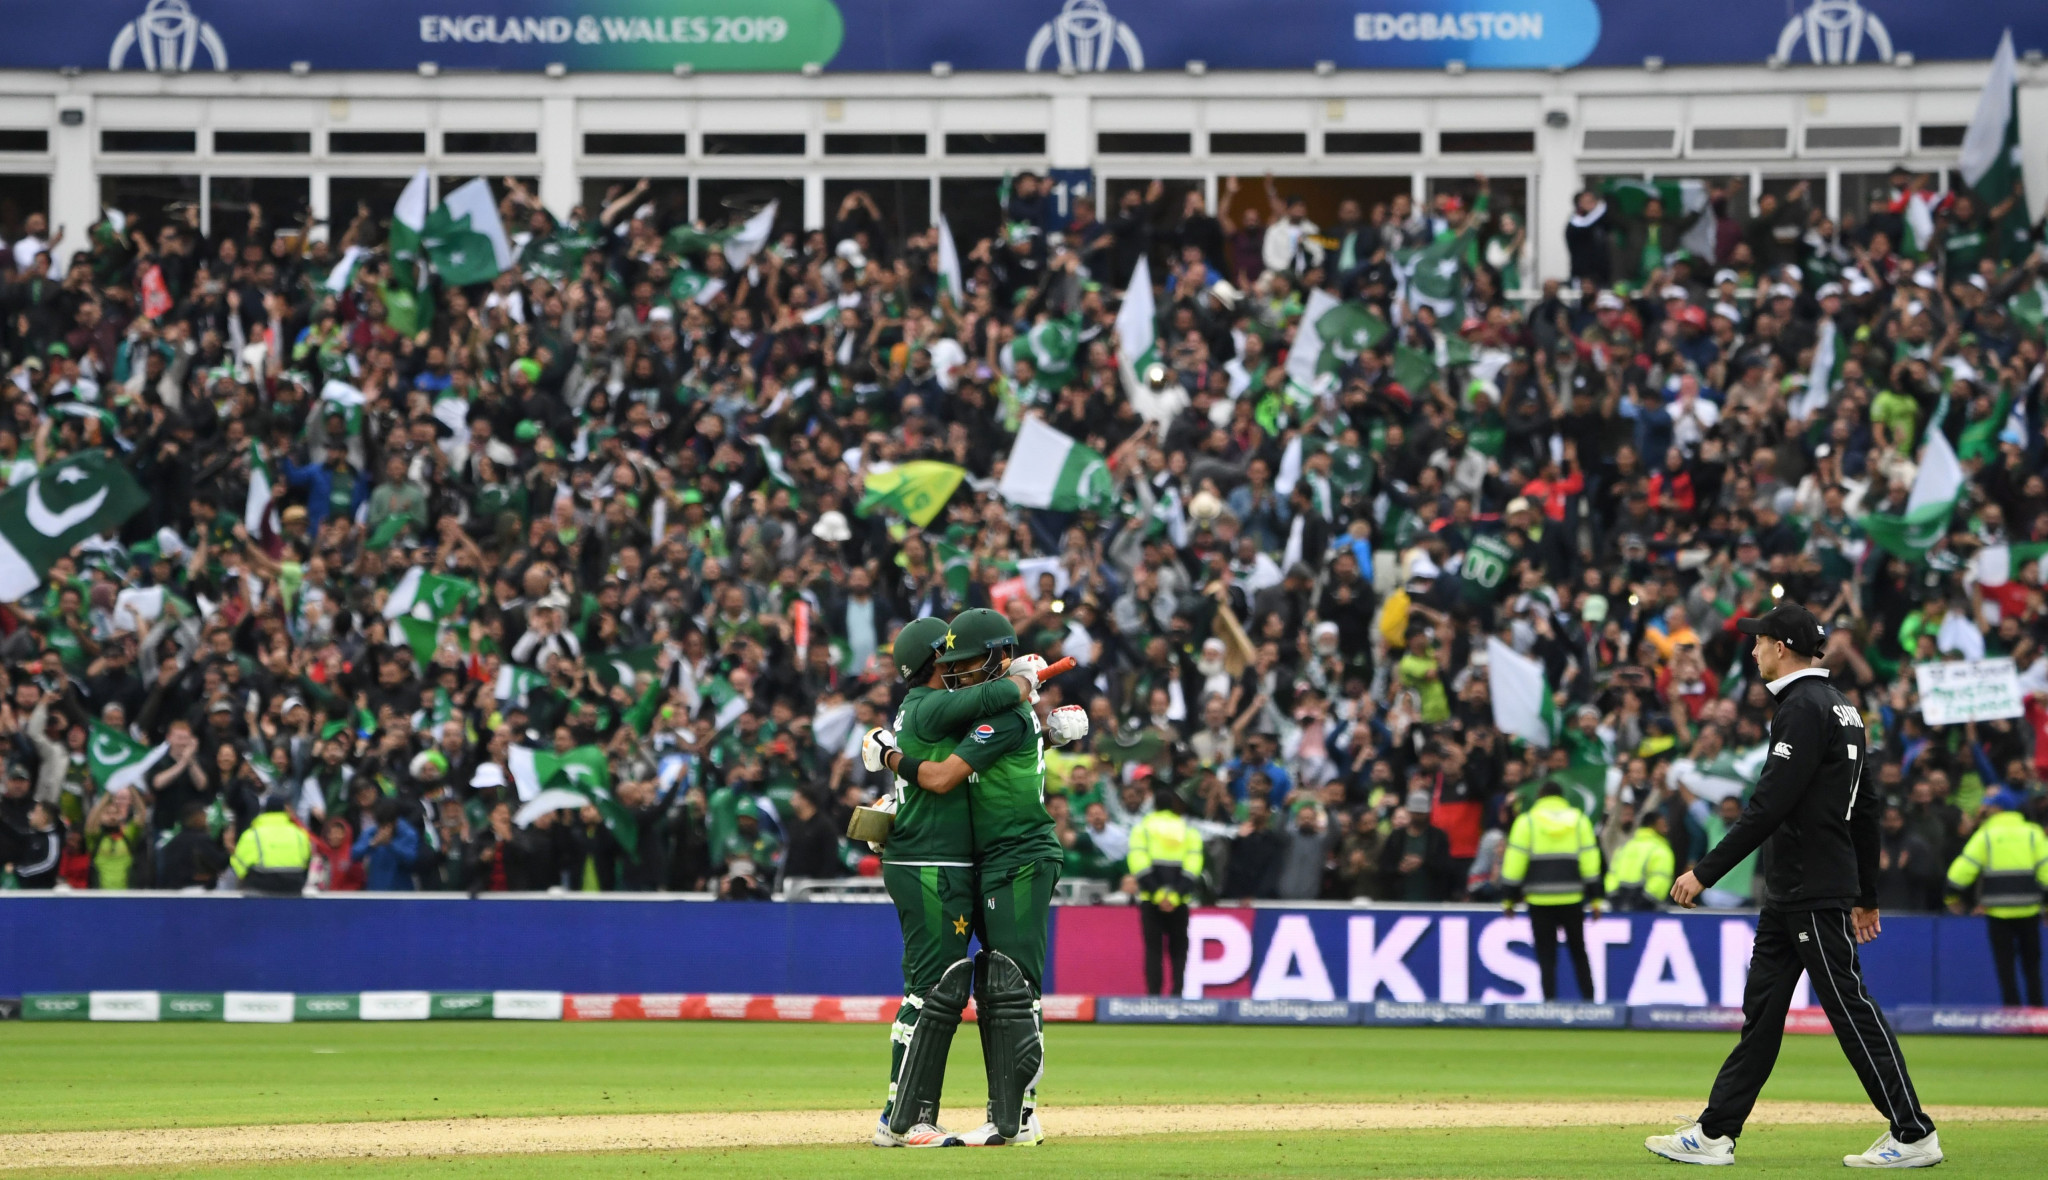 Pakistan beat New Zealand to keep semi-final hopes alive at Cricket World Cup